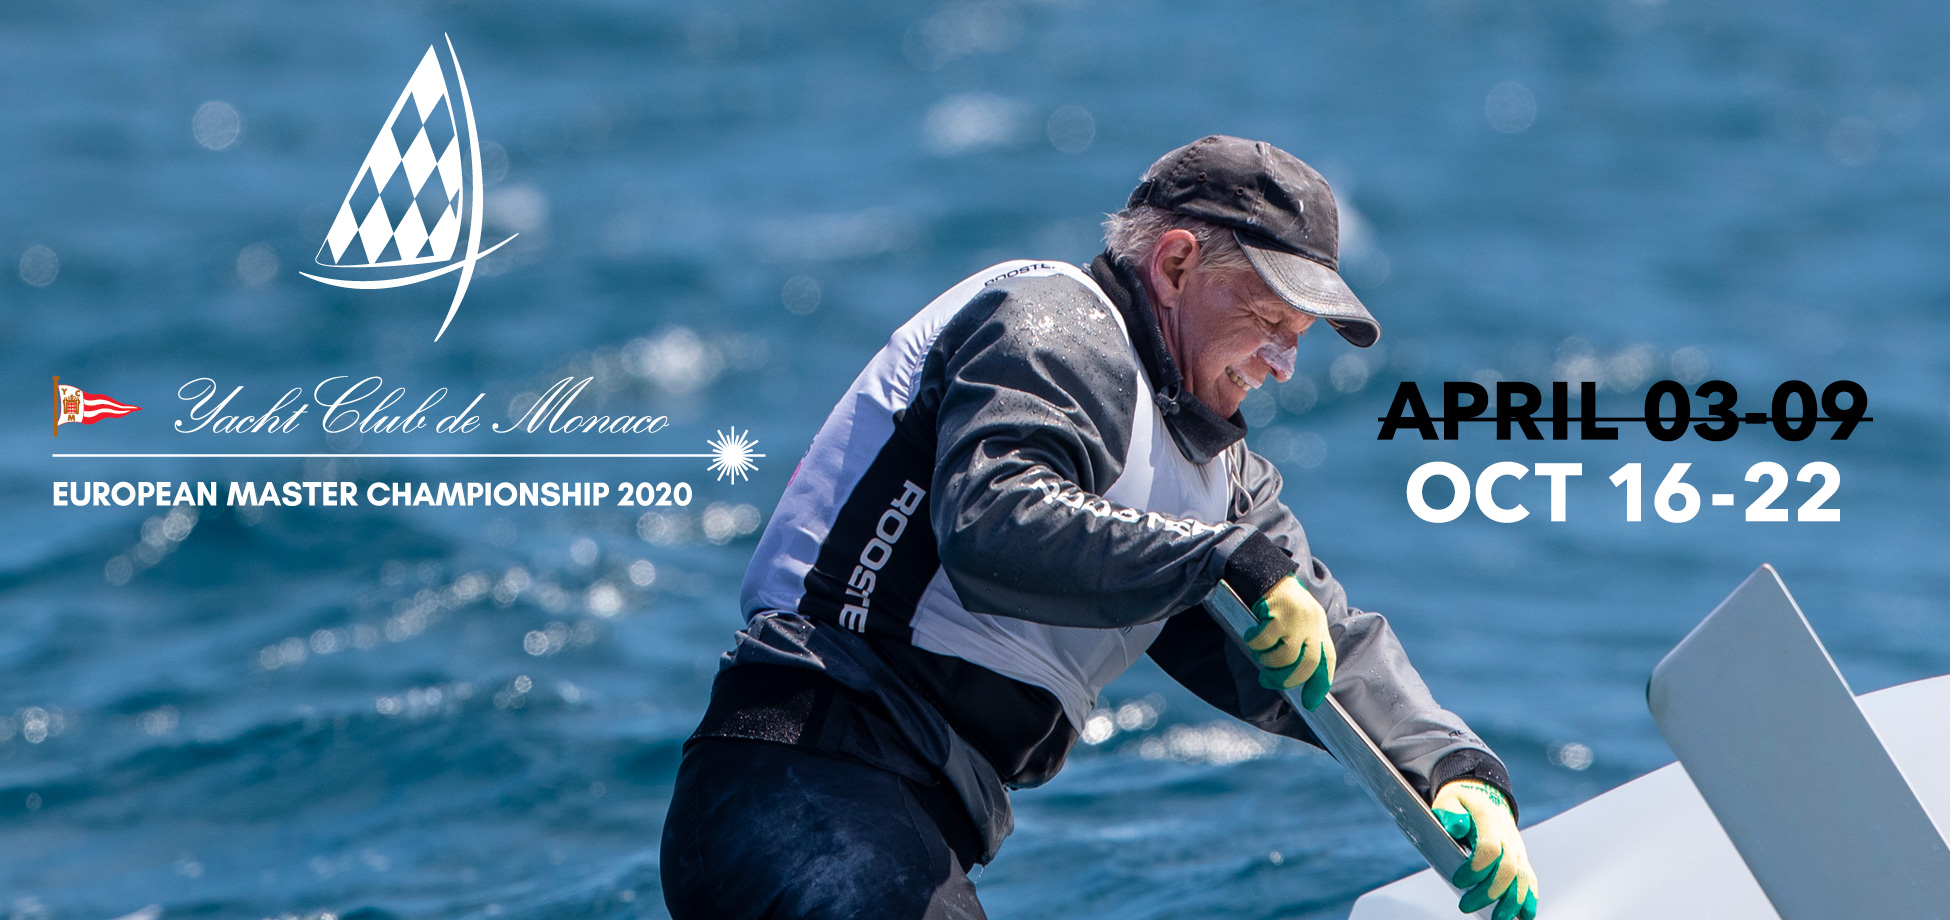 New dates 2020 Laser Master Europeans